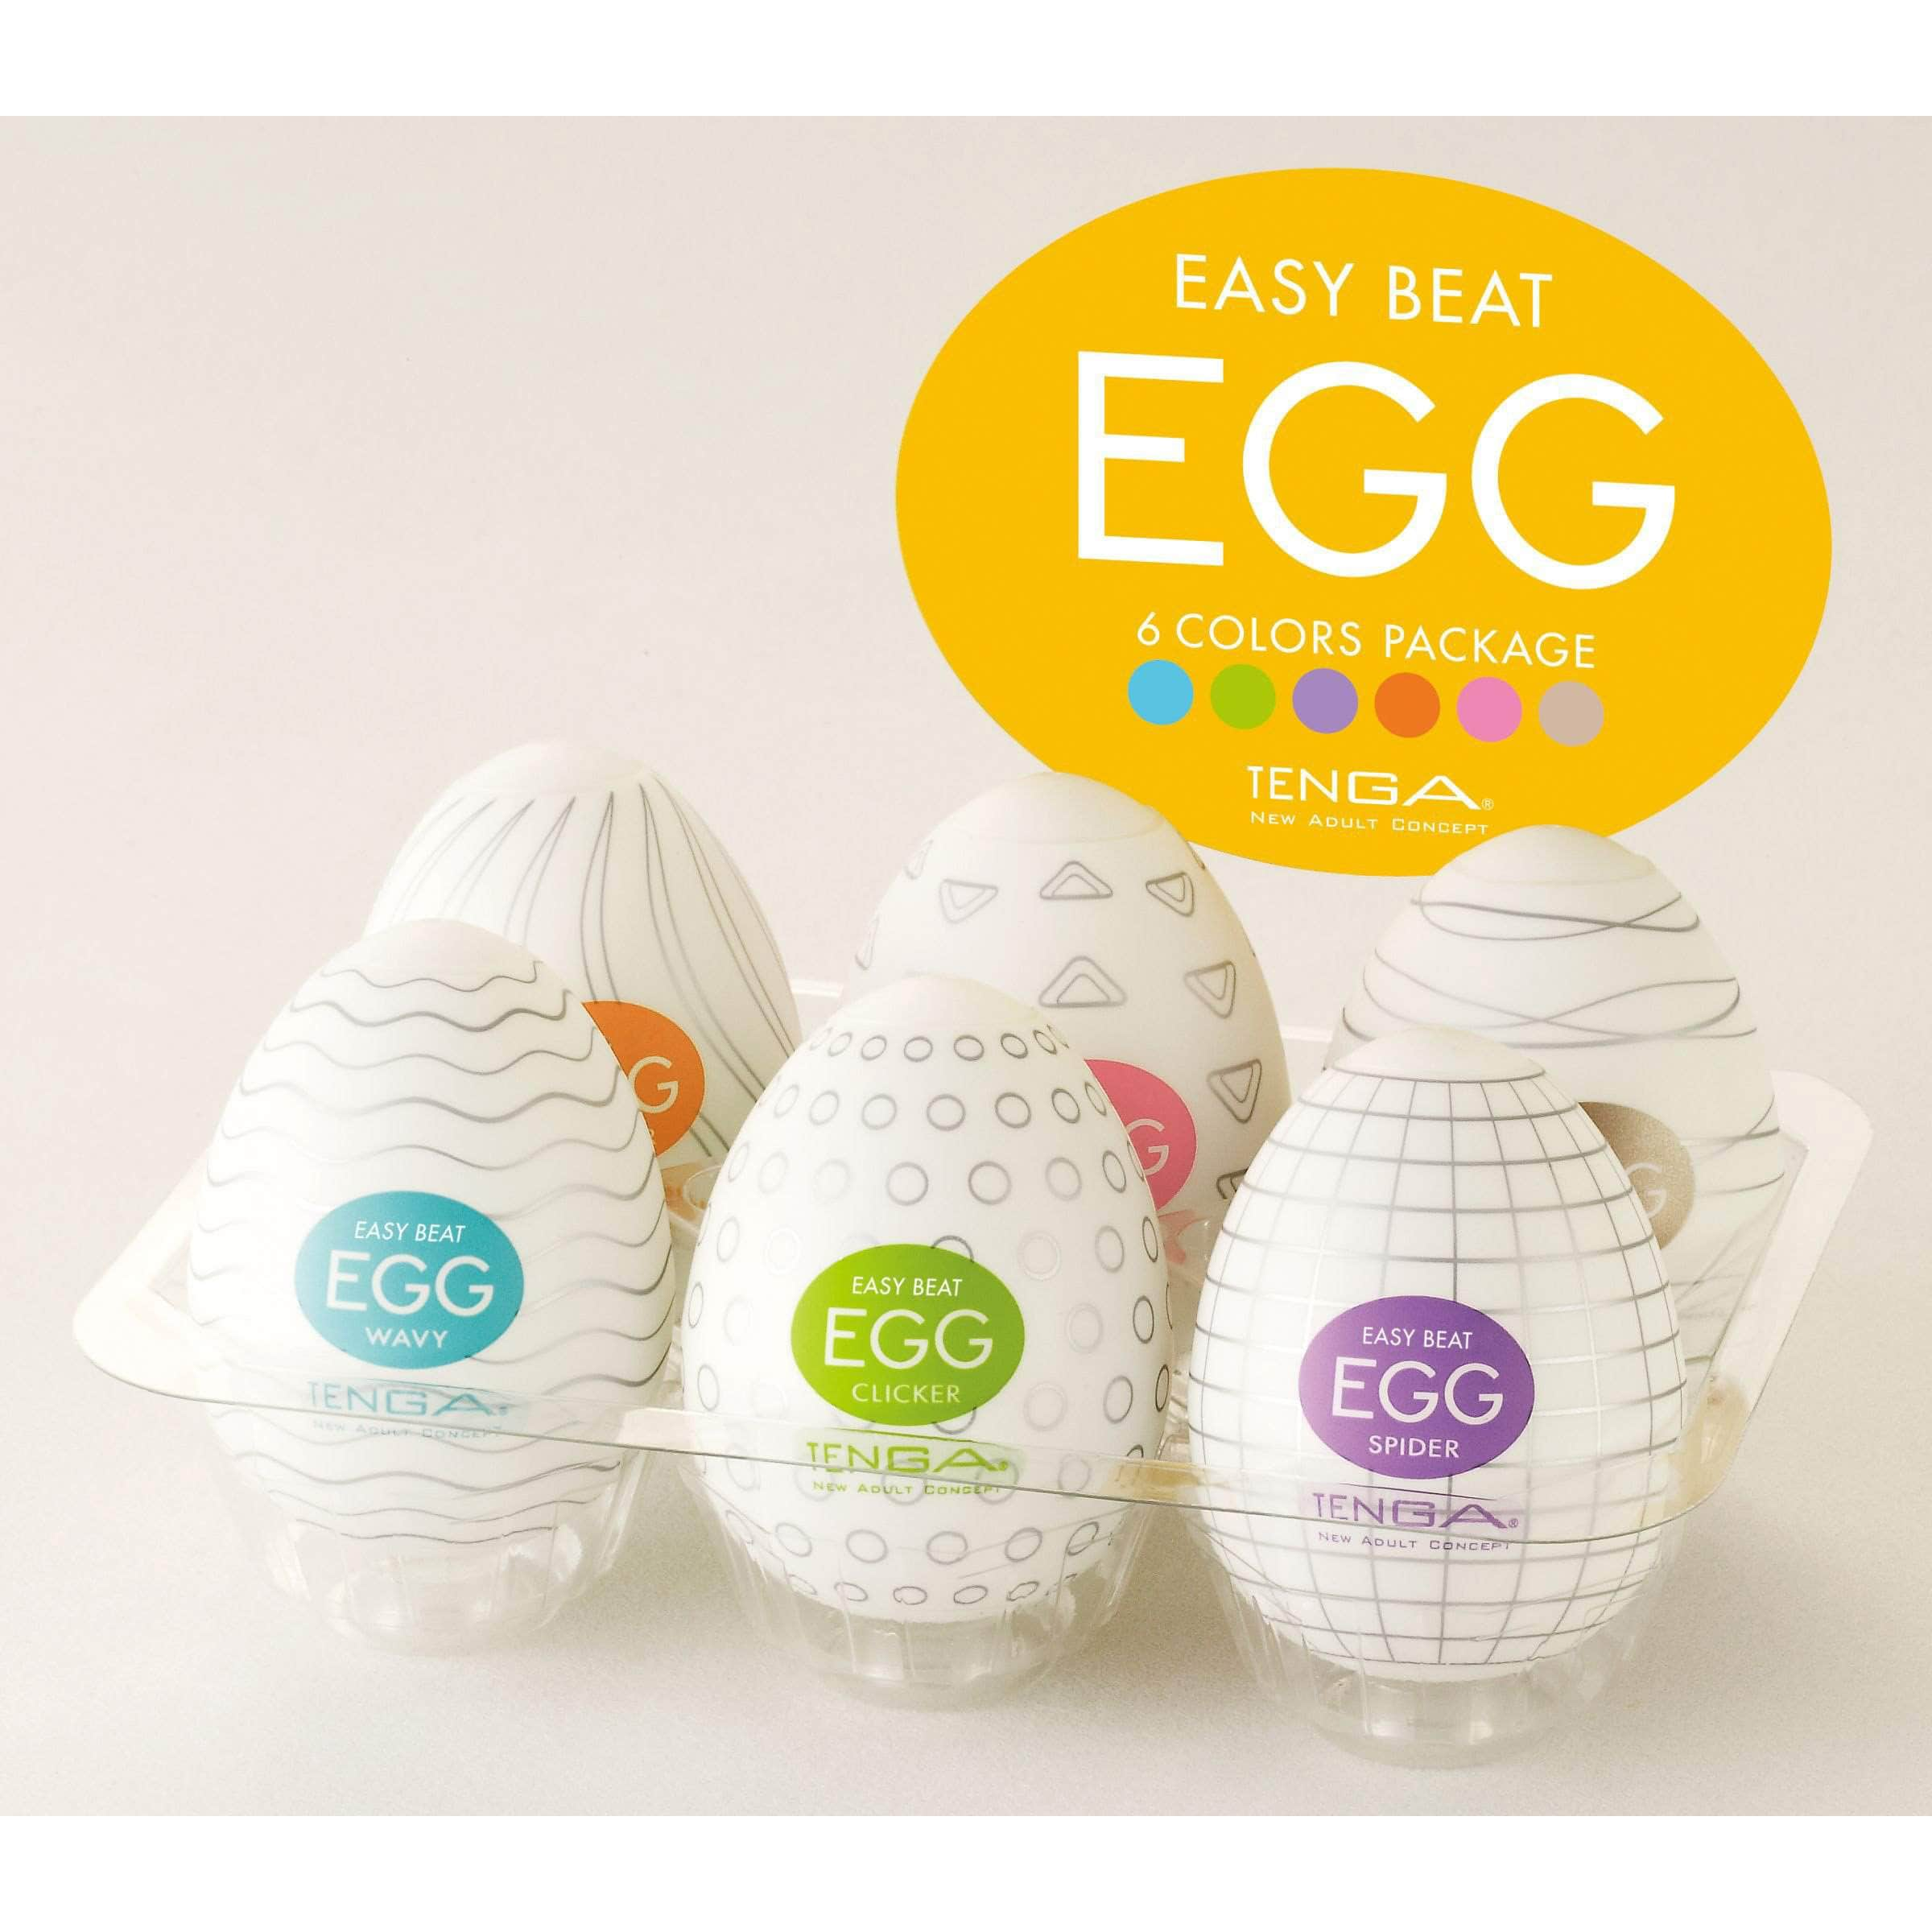 Easy Beat Egg Six Color Masturbator Six Pack